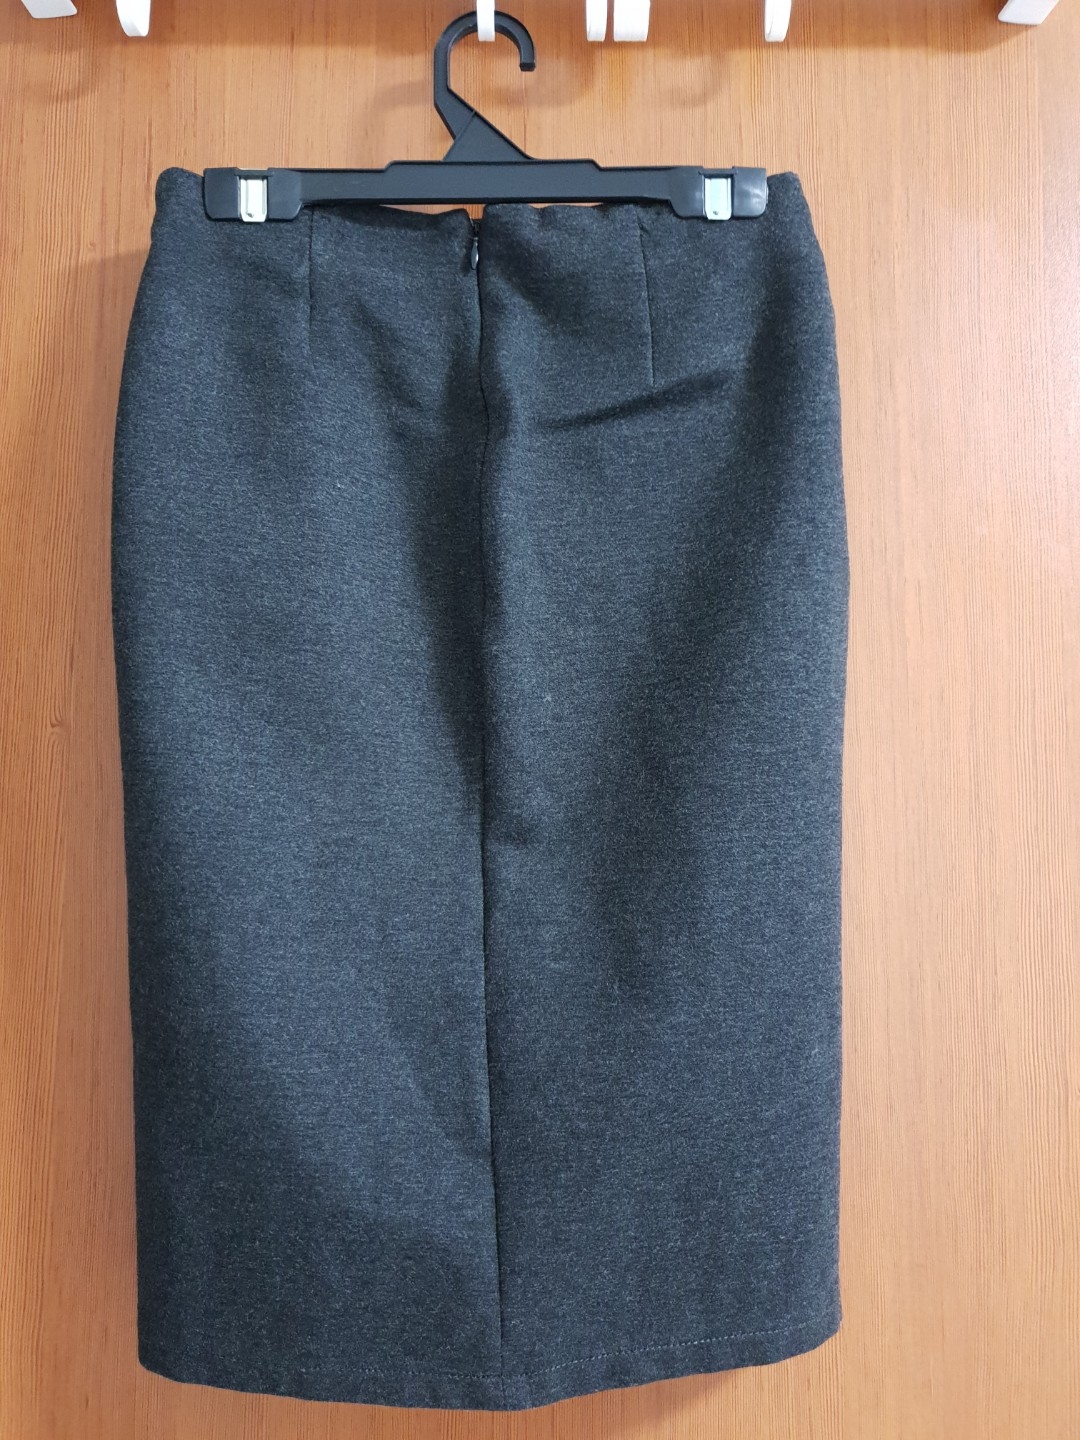 Mango Grey Pencil Skirt